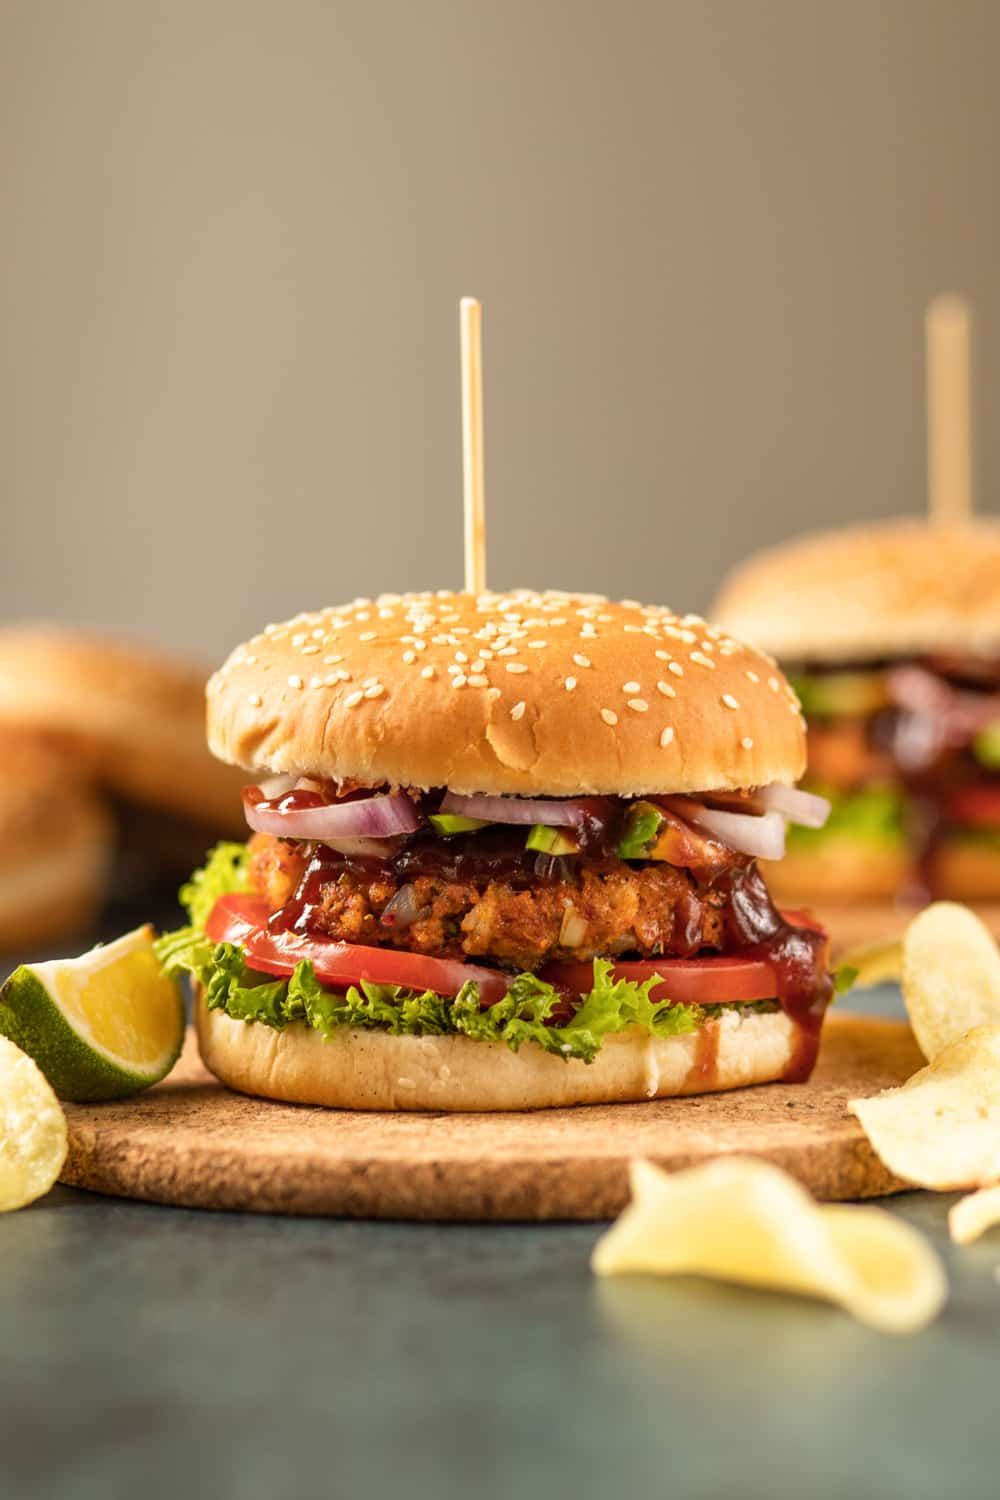 A shrimp burger with a wooden sandwich pick holding it together. The burger has onions, lettuce, tomato, and barbecue sauce on it.